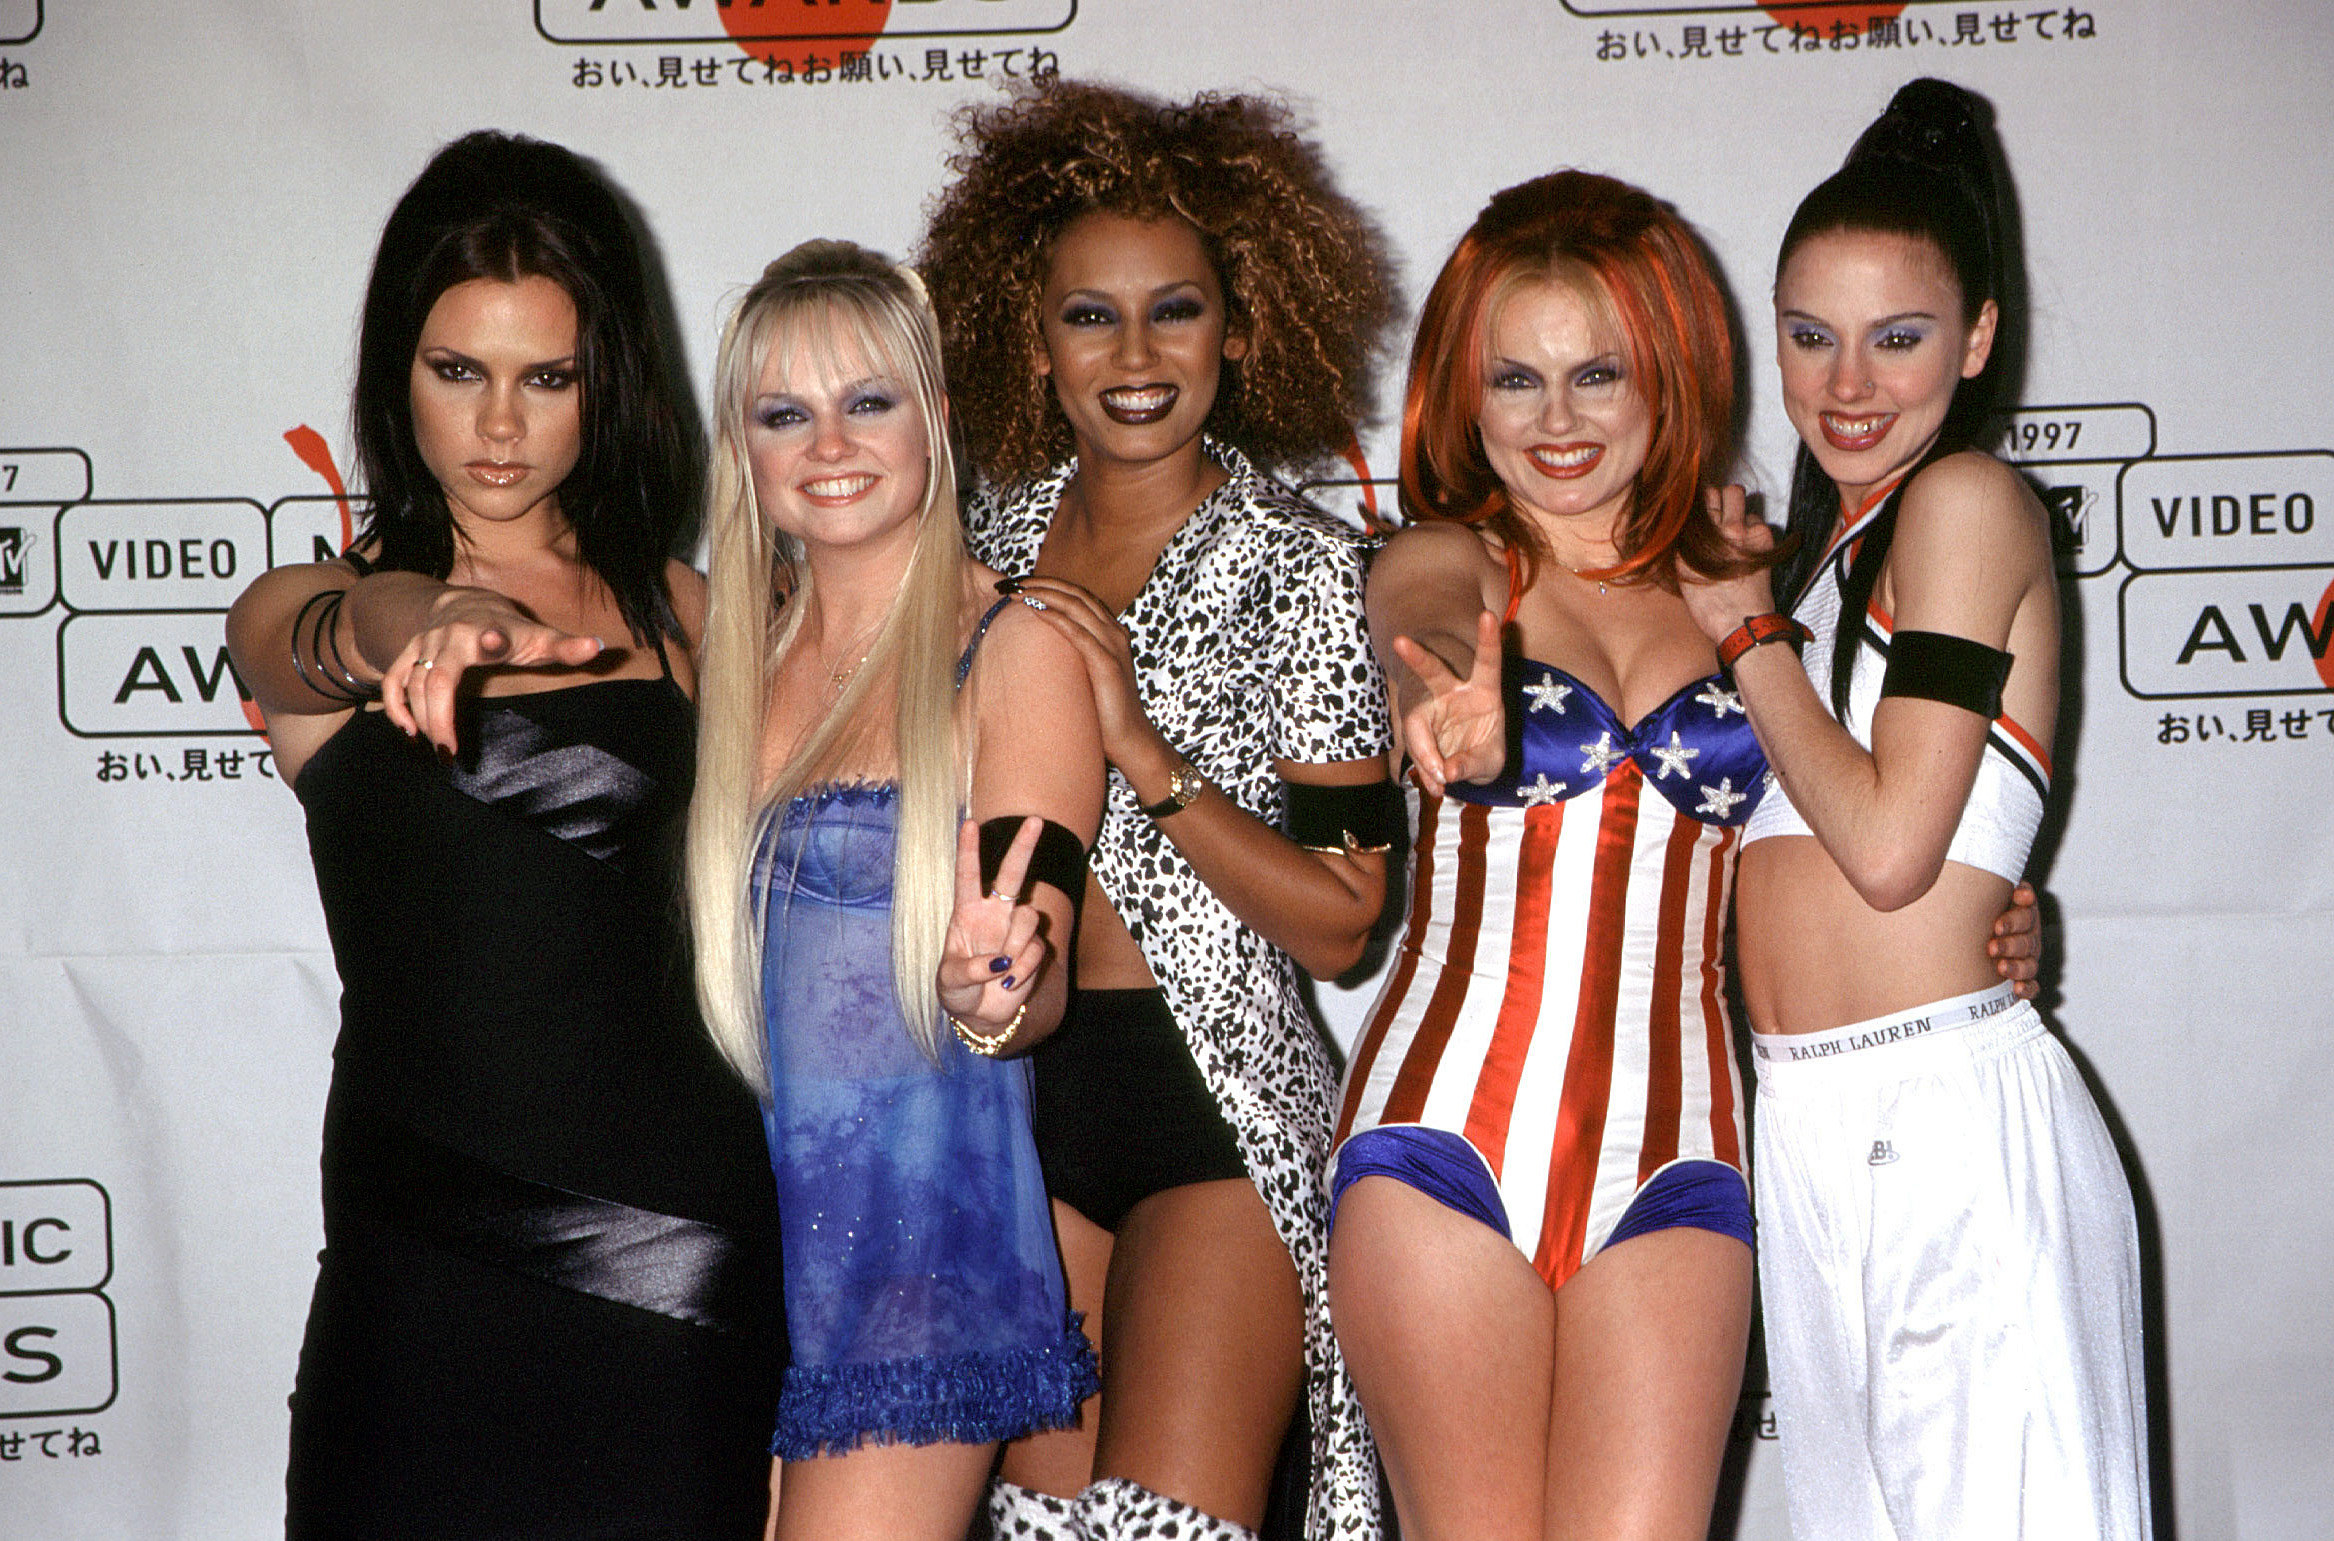 The Spice Girls hold up peace signs on a red carpet